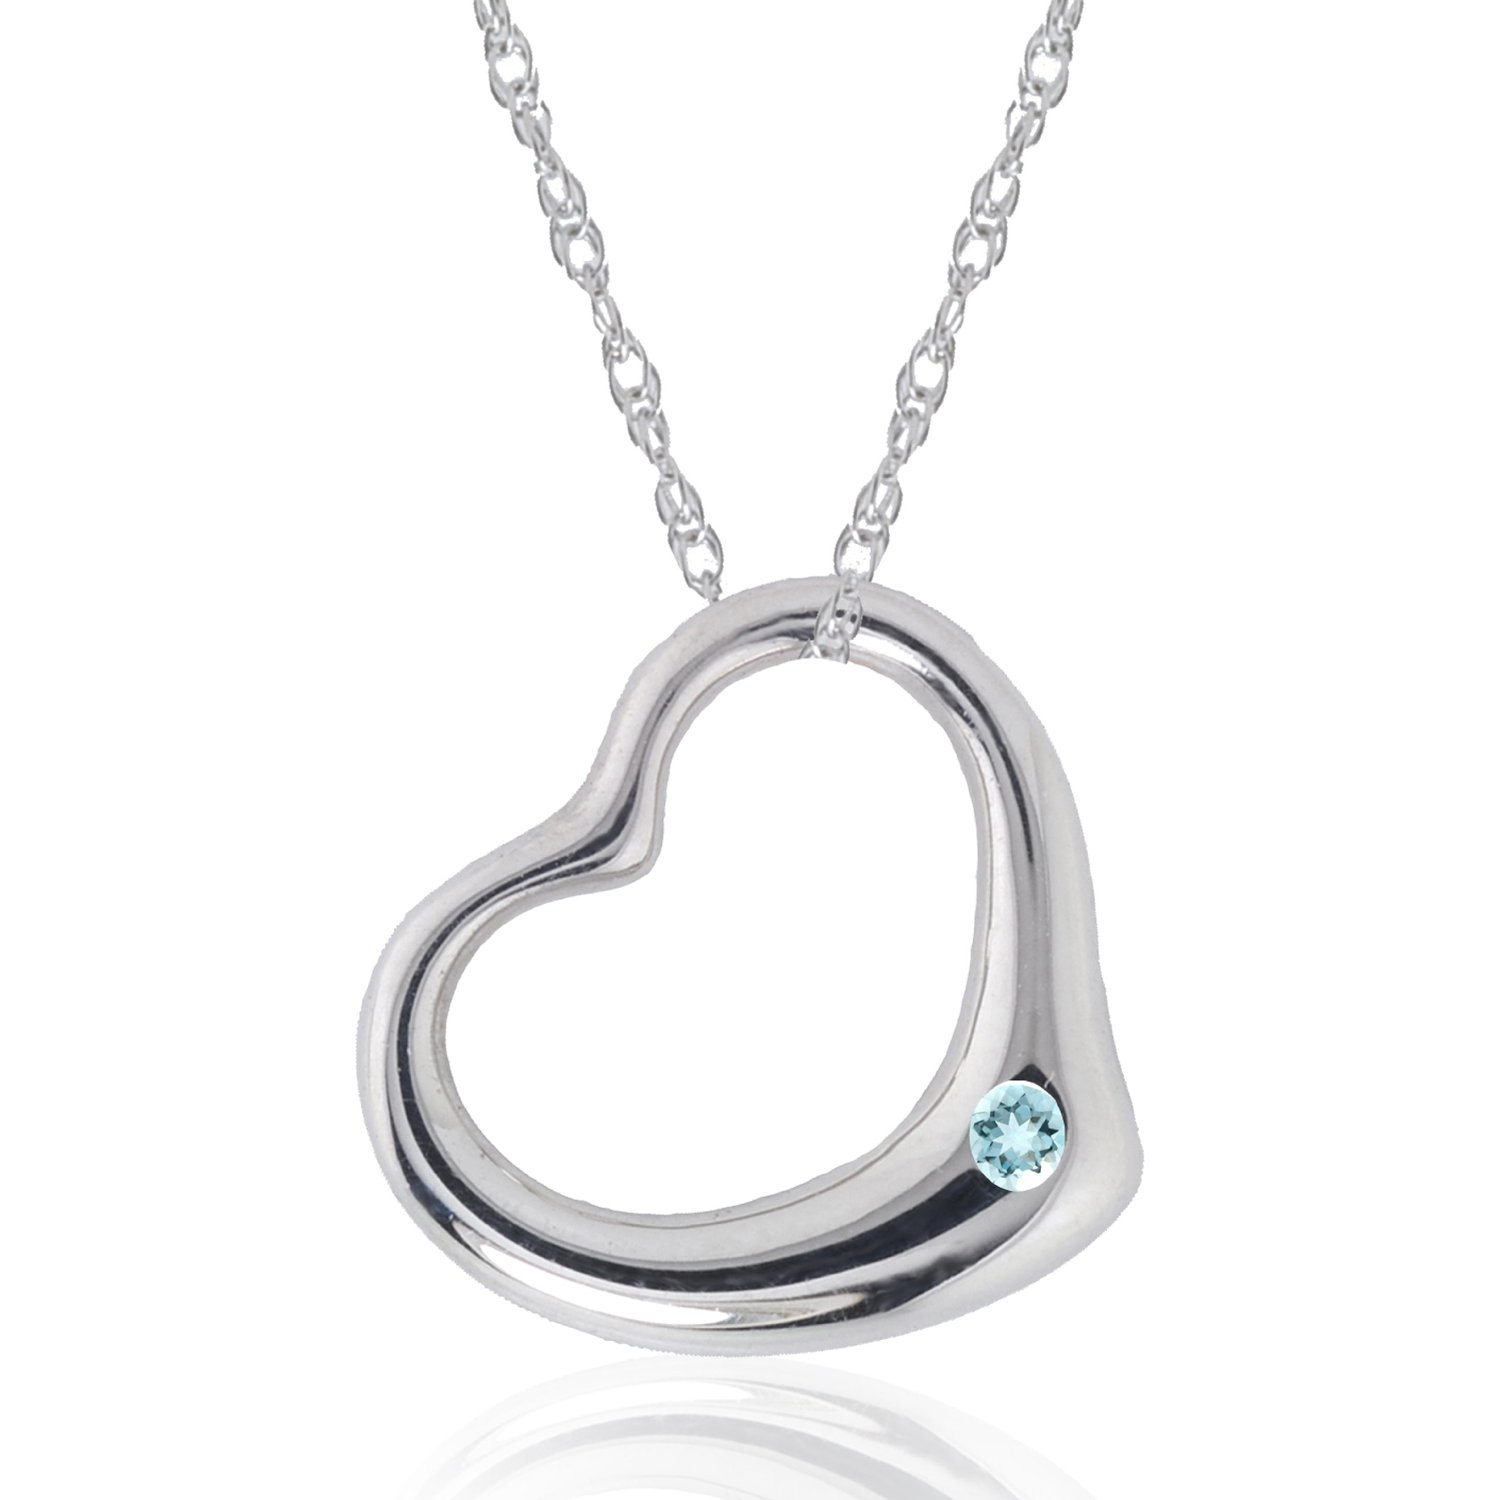 What Is The Meaning Of The Open Heart Necklace? Intended For Current Open Heart Necklaces (View 15 of 25)